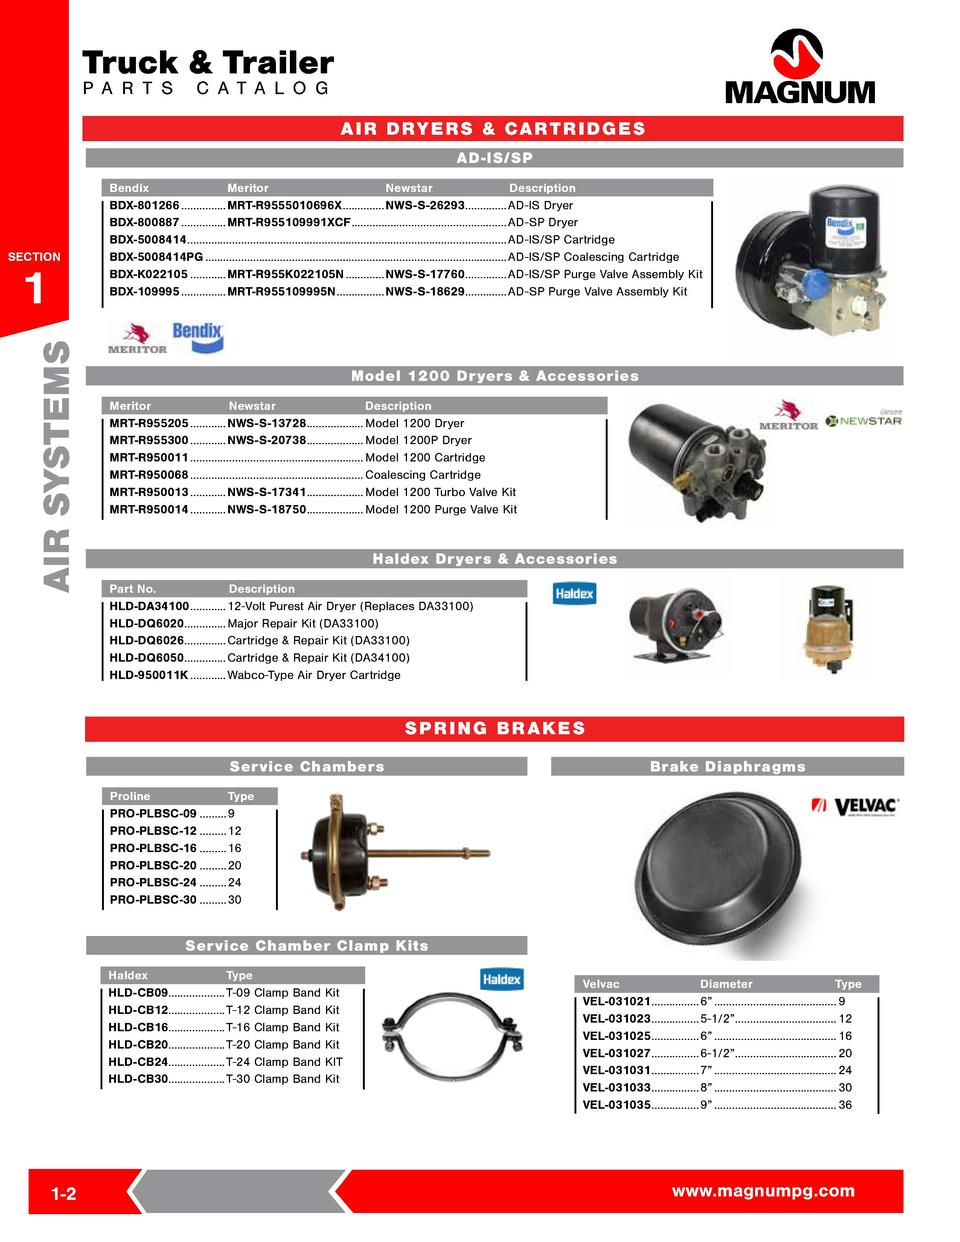 hight resolution of  kit 2s 1m module with 5 pigtail sensor cables 802001 bendix tabs 6 wiring harness 802009 bendix tabs 6 wiring harness 802902 1 4 www magnumpg com